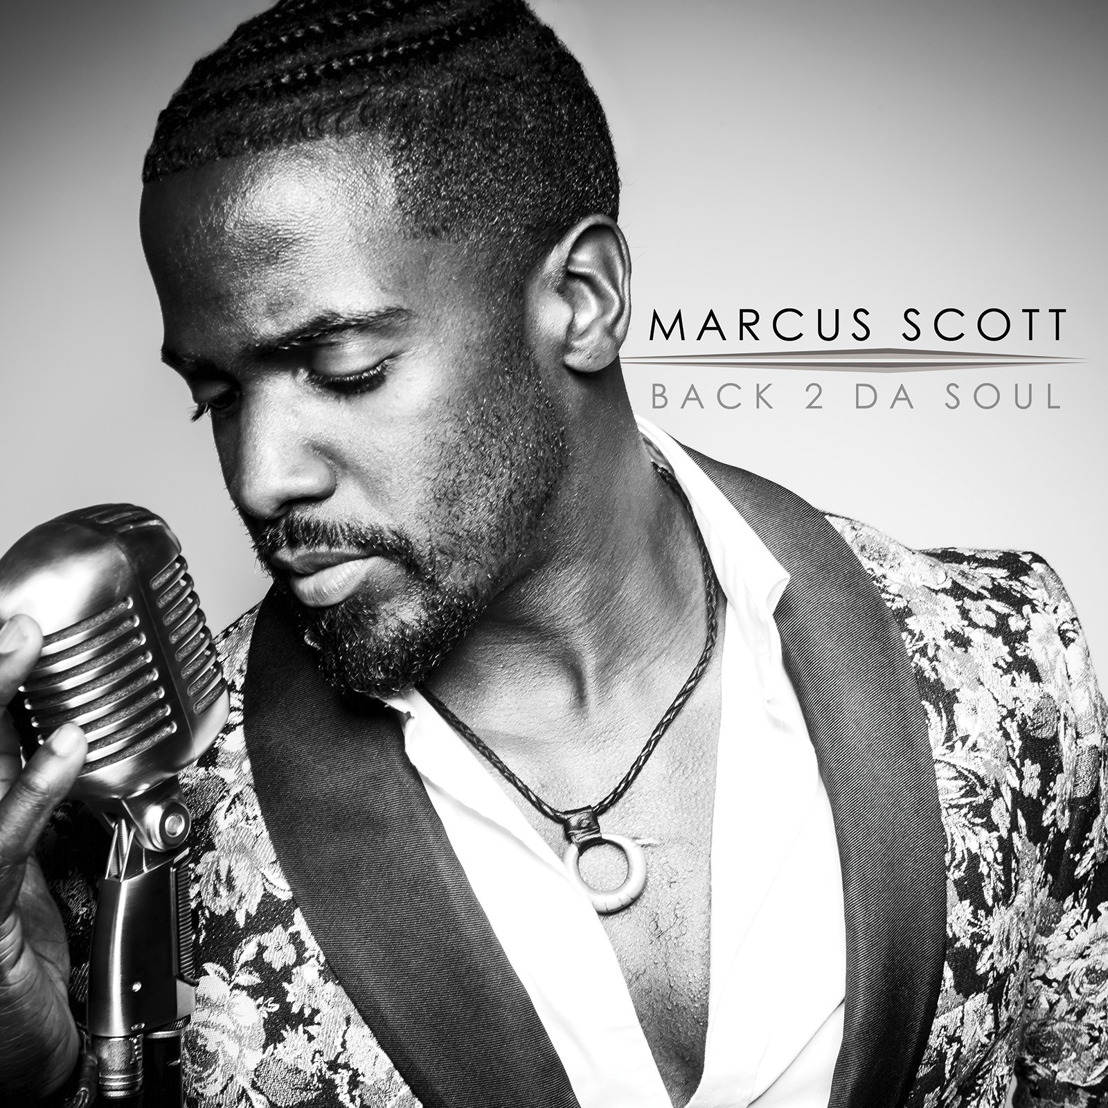 Tower of Power Frontman Marcus Scott Celebrates Release of 'Back 2 Da Soul' With the Sweetwater All Stars